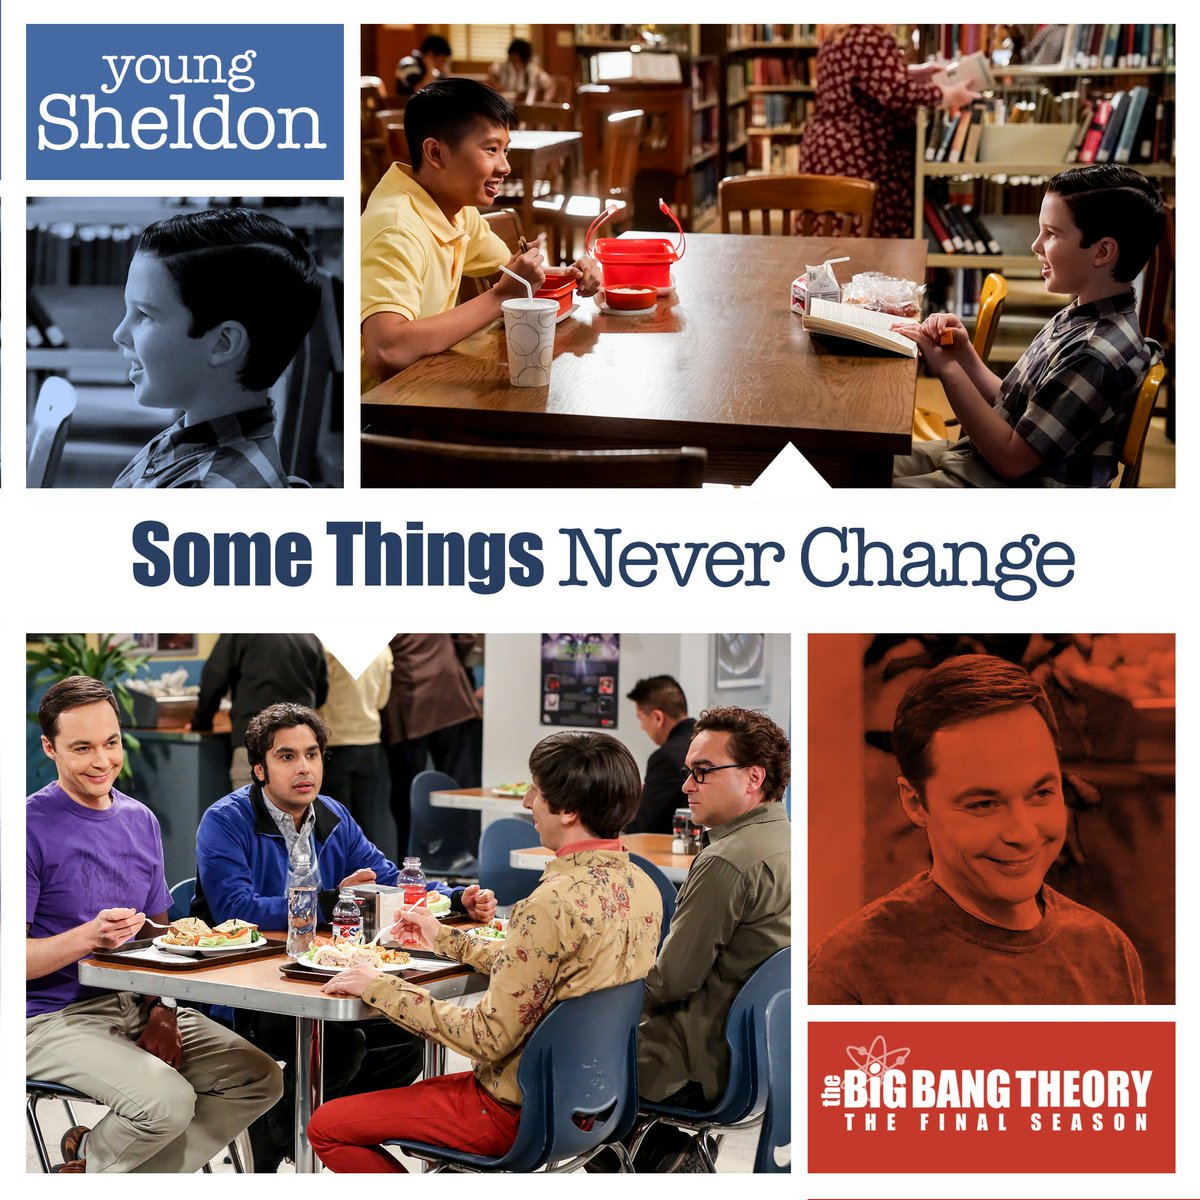 'You know, I try very hard to make our lunch hours educational and informative.' - Sheldon